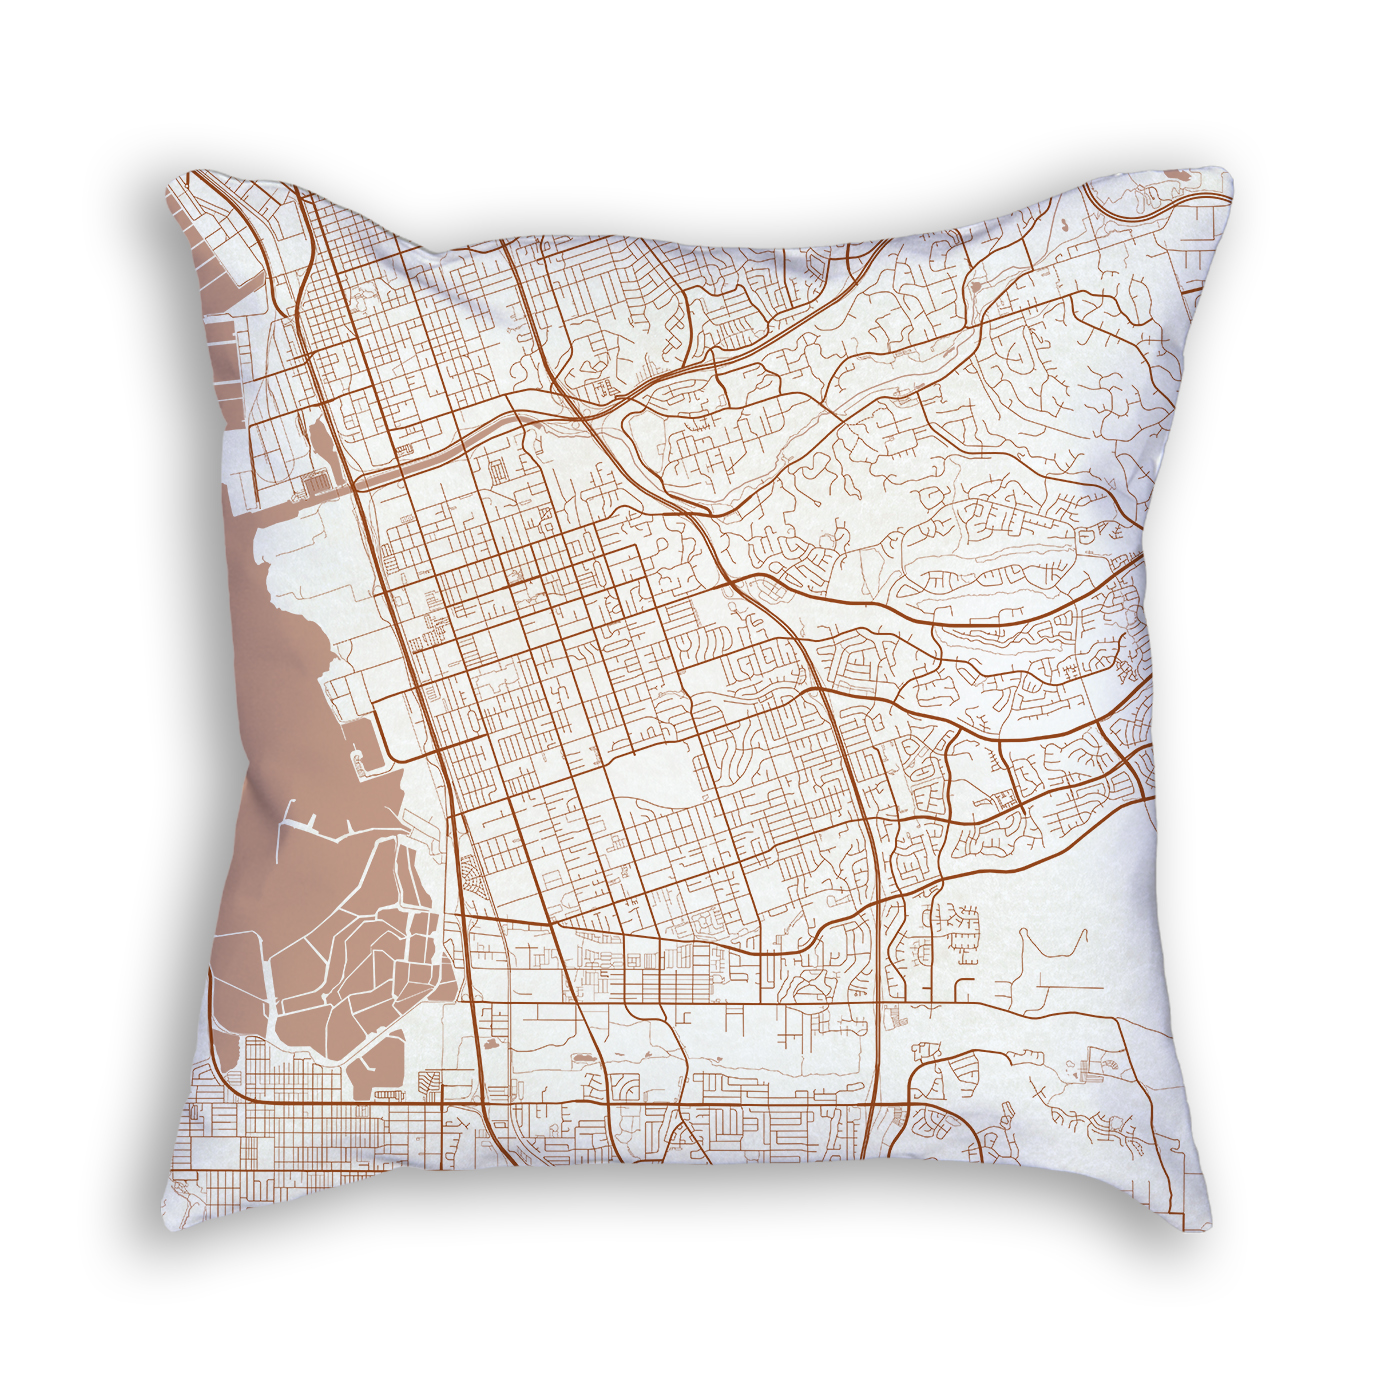 Chula Vista CA City Map Art Decorative Throw Pillow